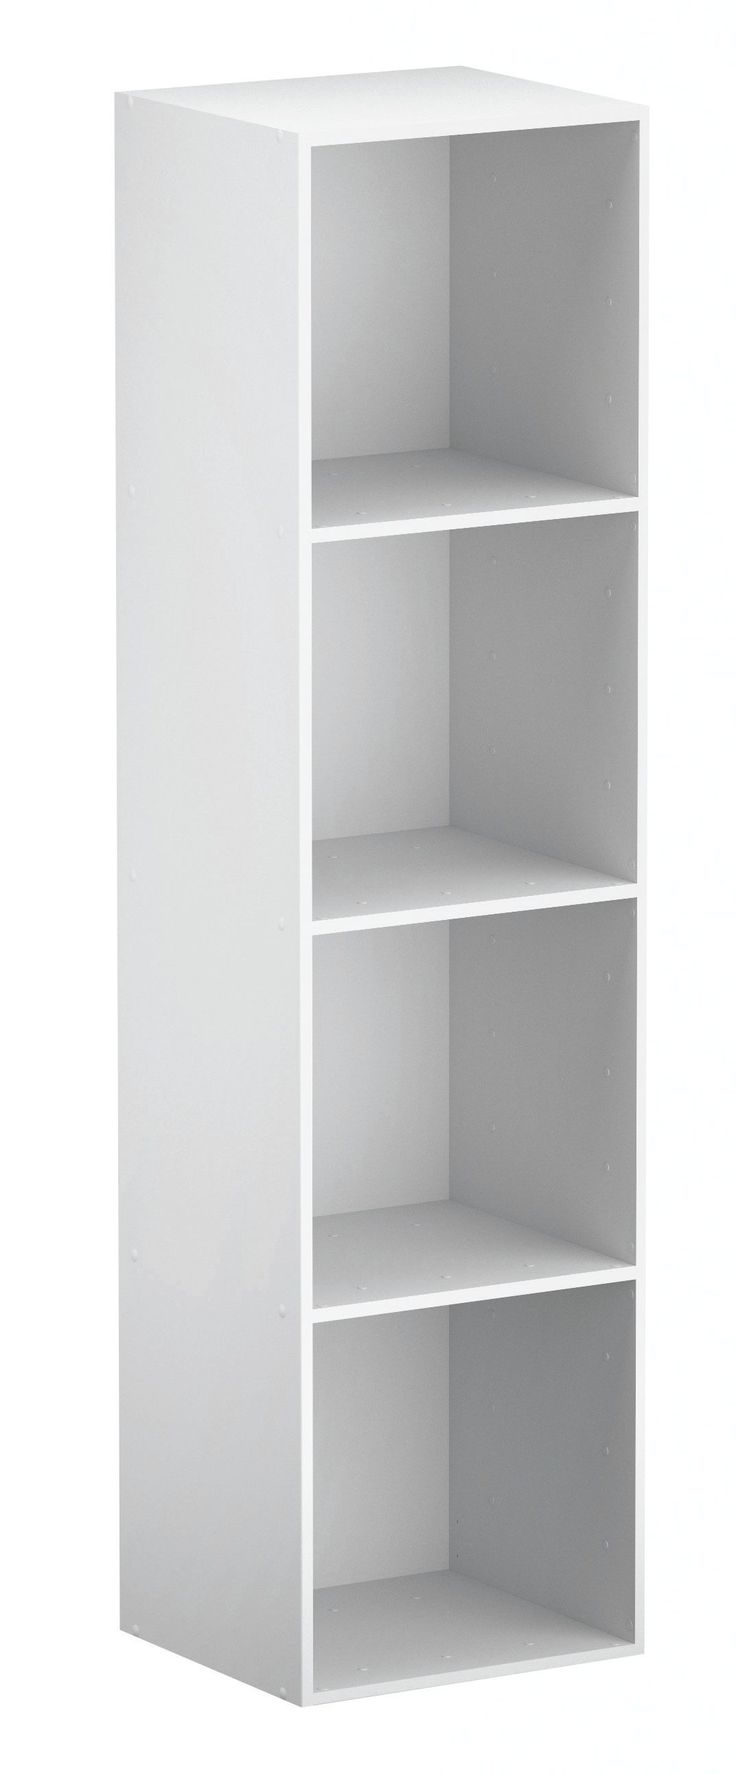 Form Konnect White 4 Cube Shelving Unit (H)1372mm (W)352mm | Departments | DIY at B&Q